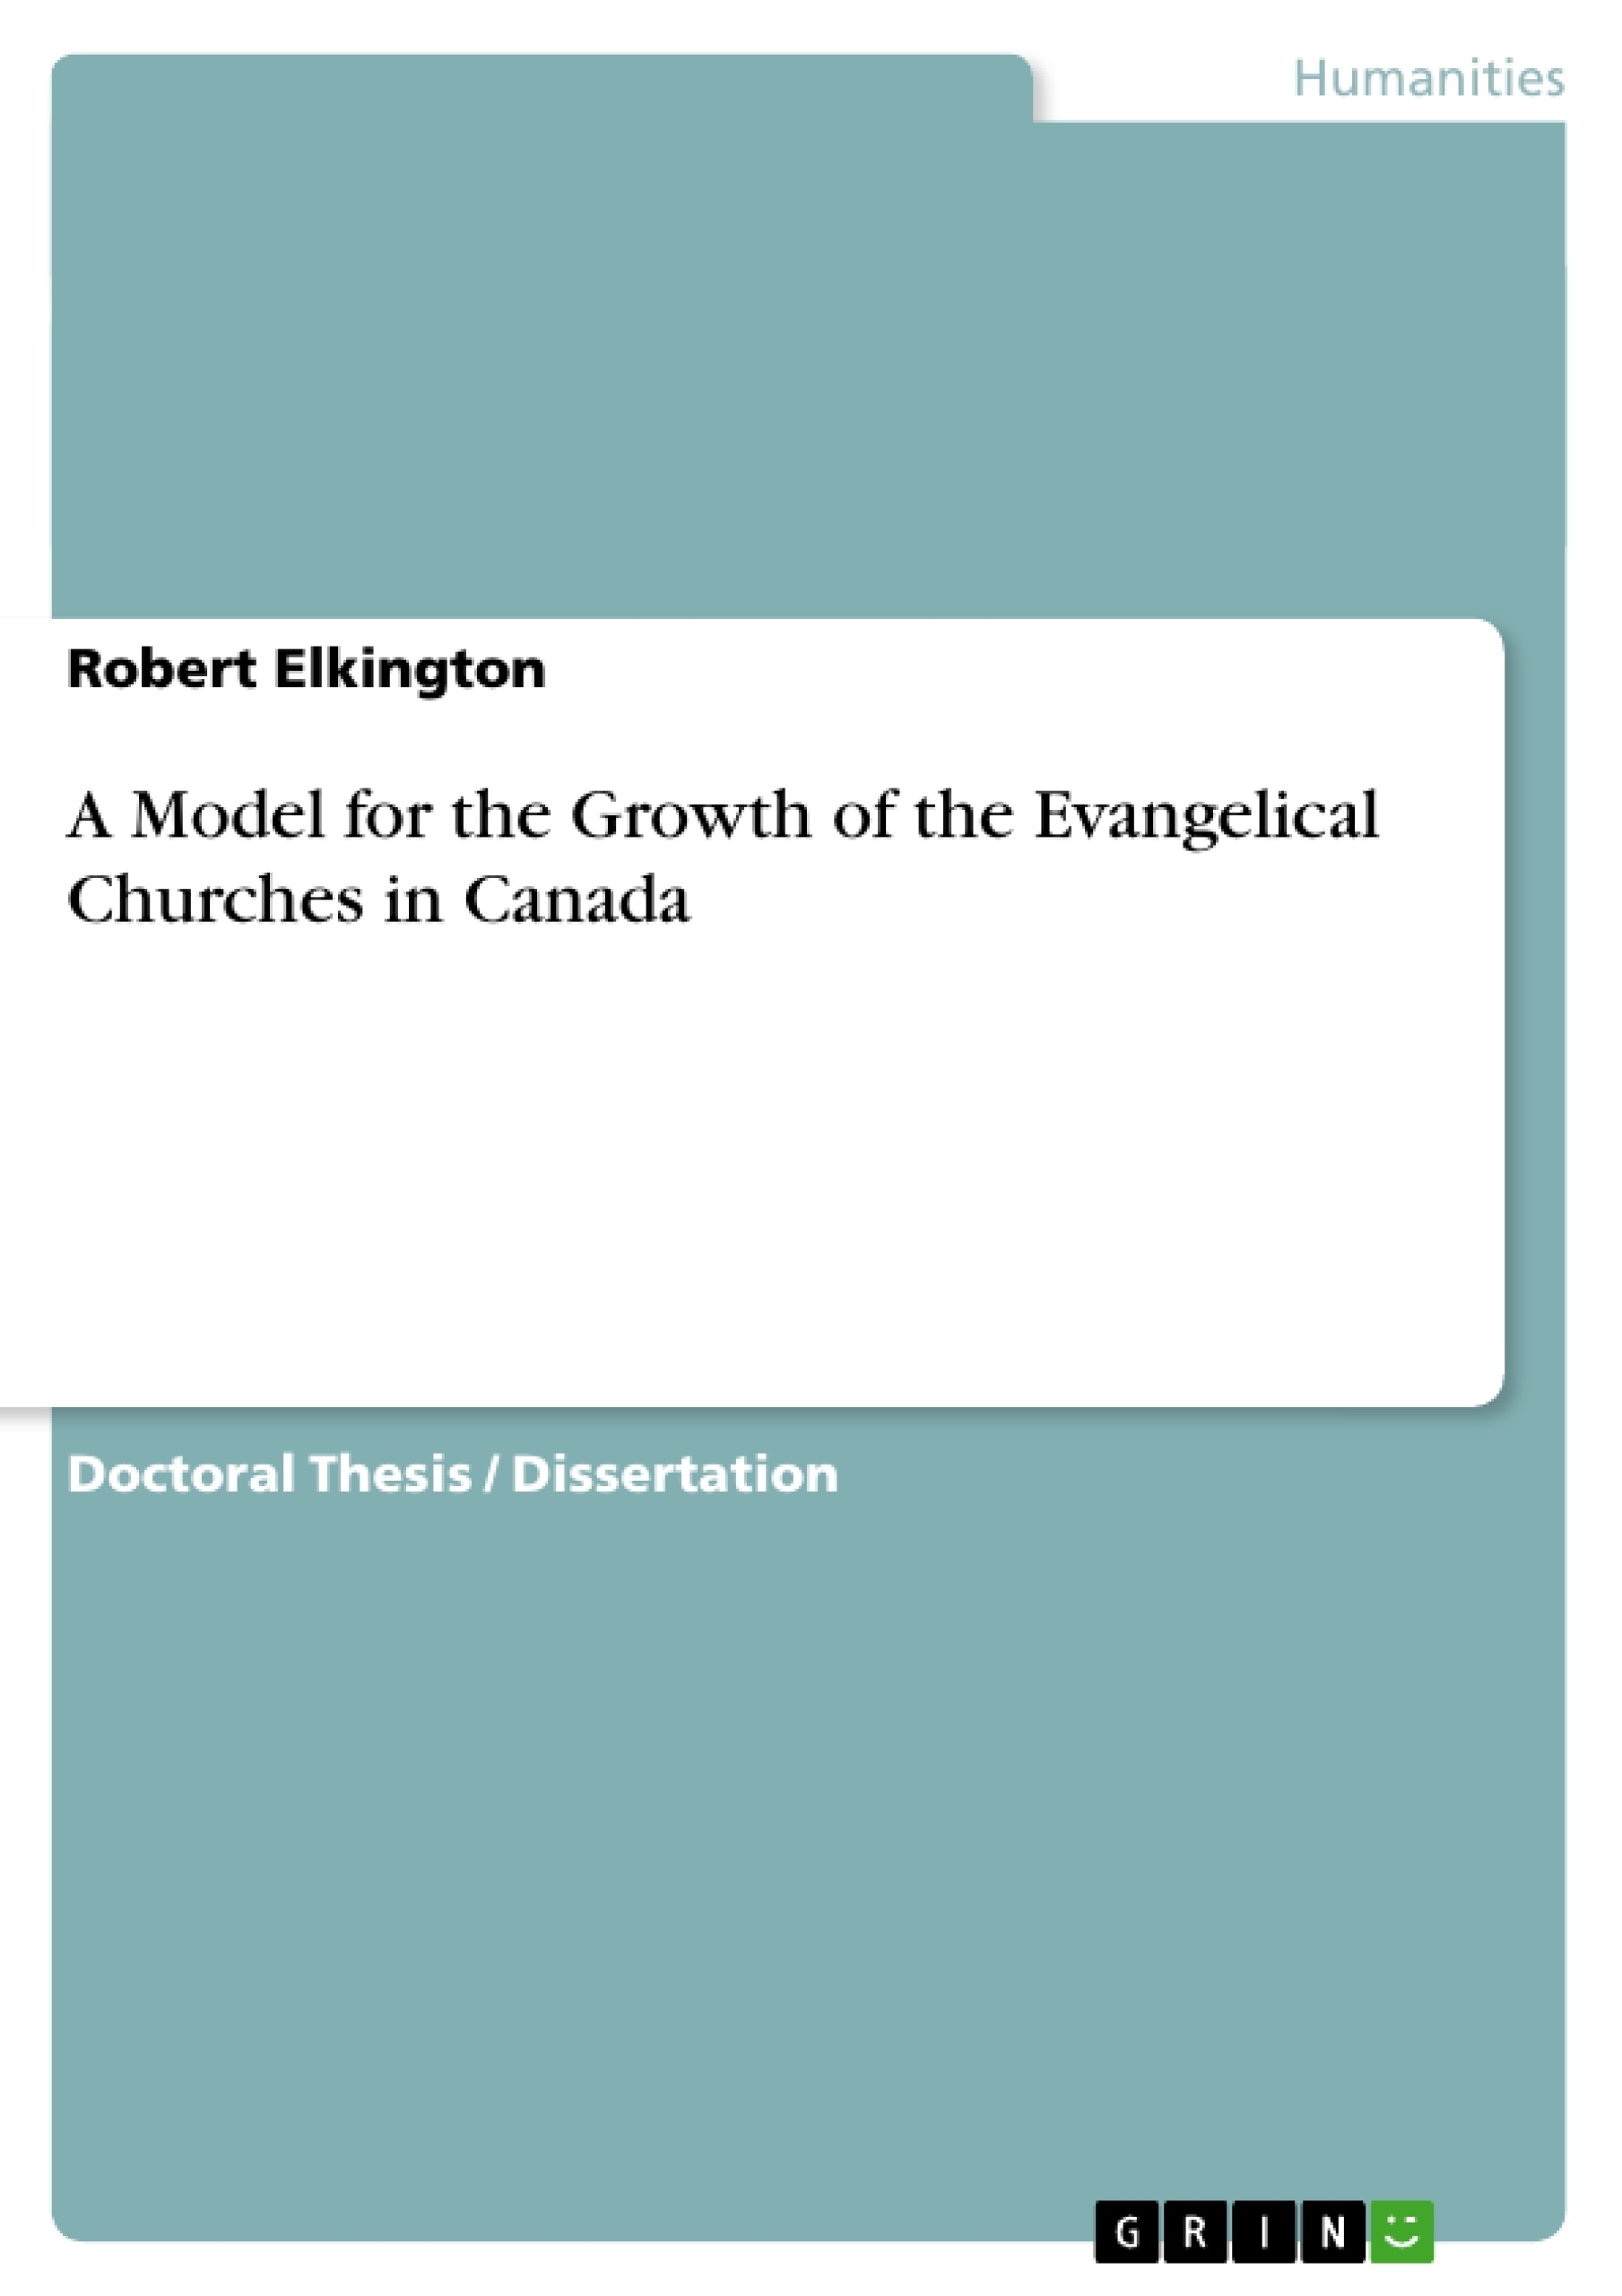 Diplomarbeiten24 de - A Model for the Growth of the Evangelical Churches in  Canada